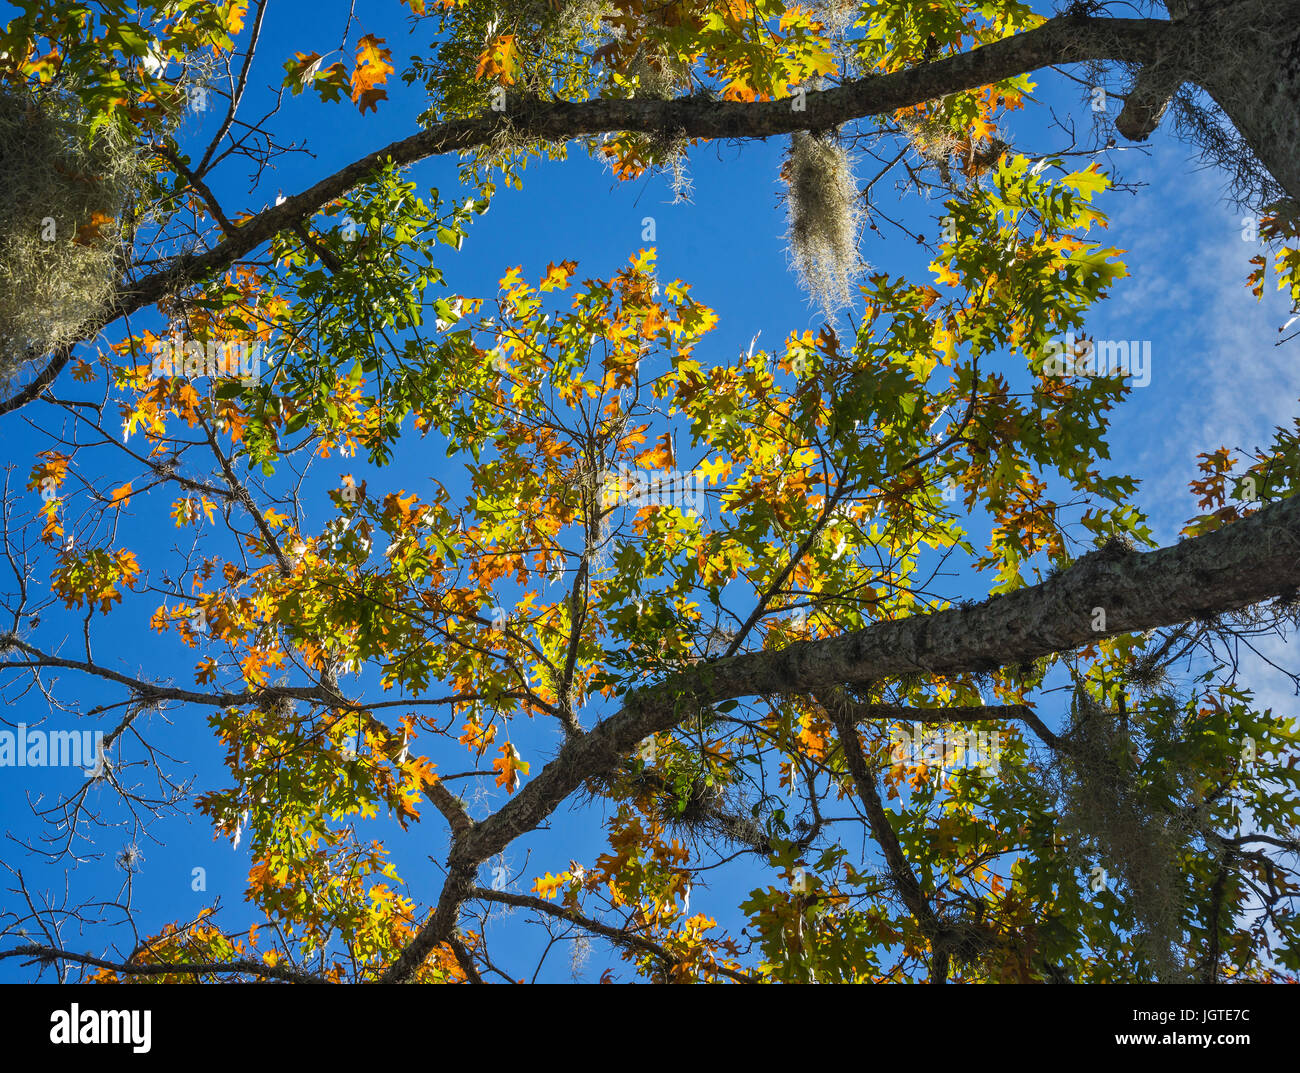 Colored autumn leaves on a tree in North Florida. - Stock Image